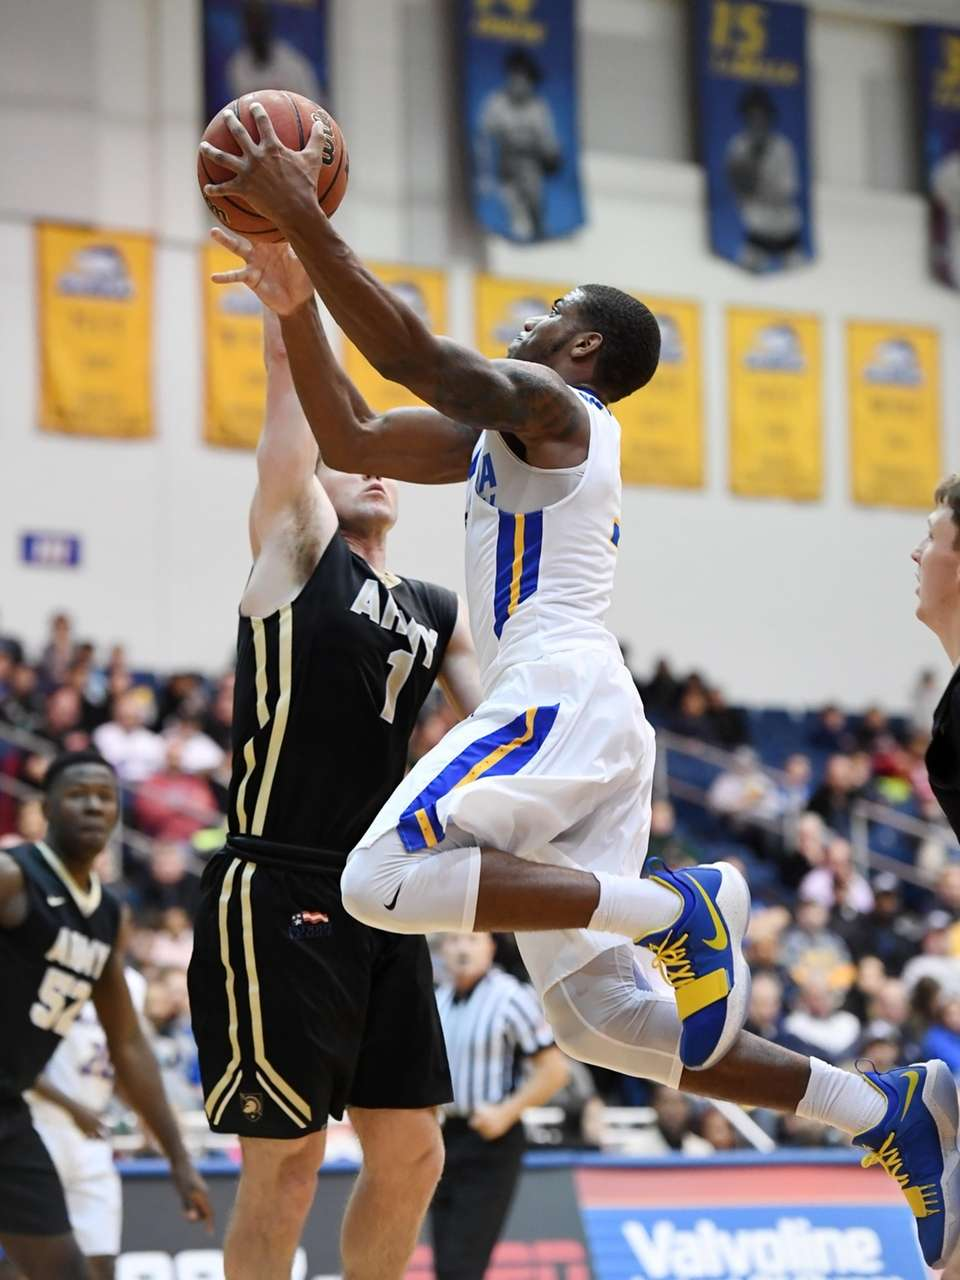 Justin Wright-Foreman, who had 25 points, dribbles past